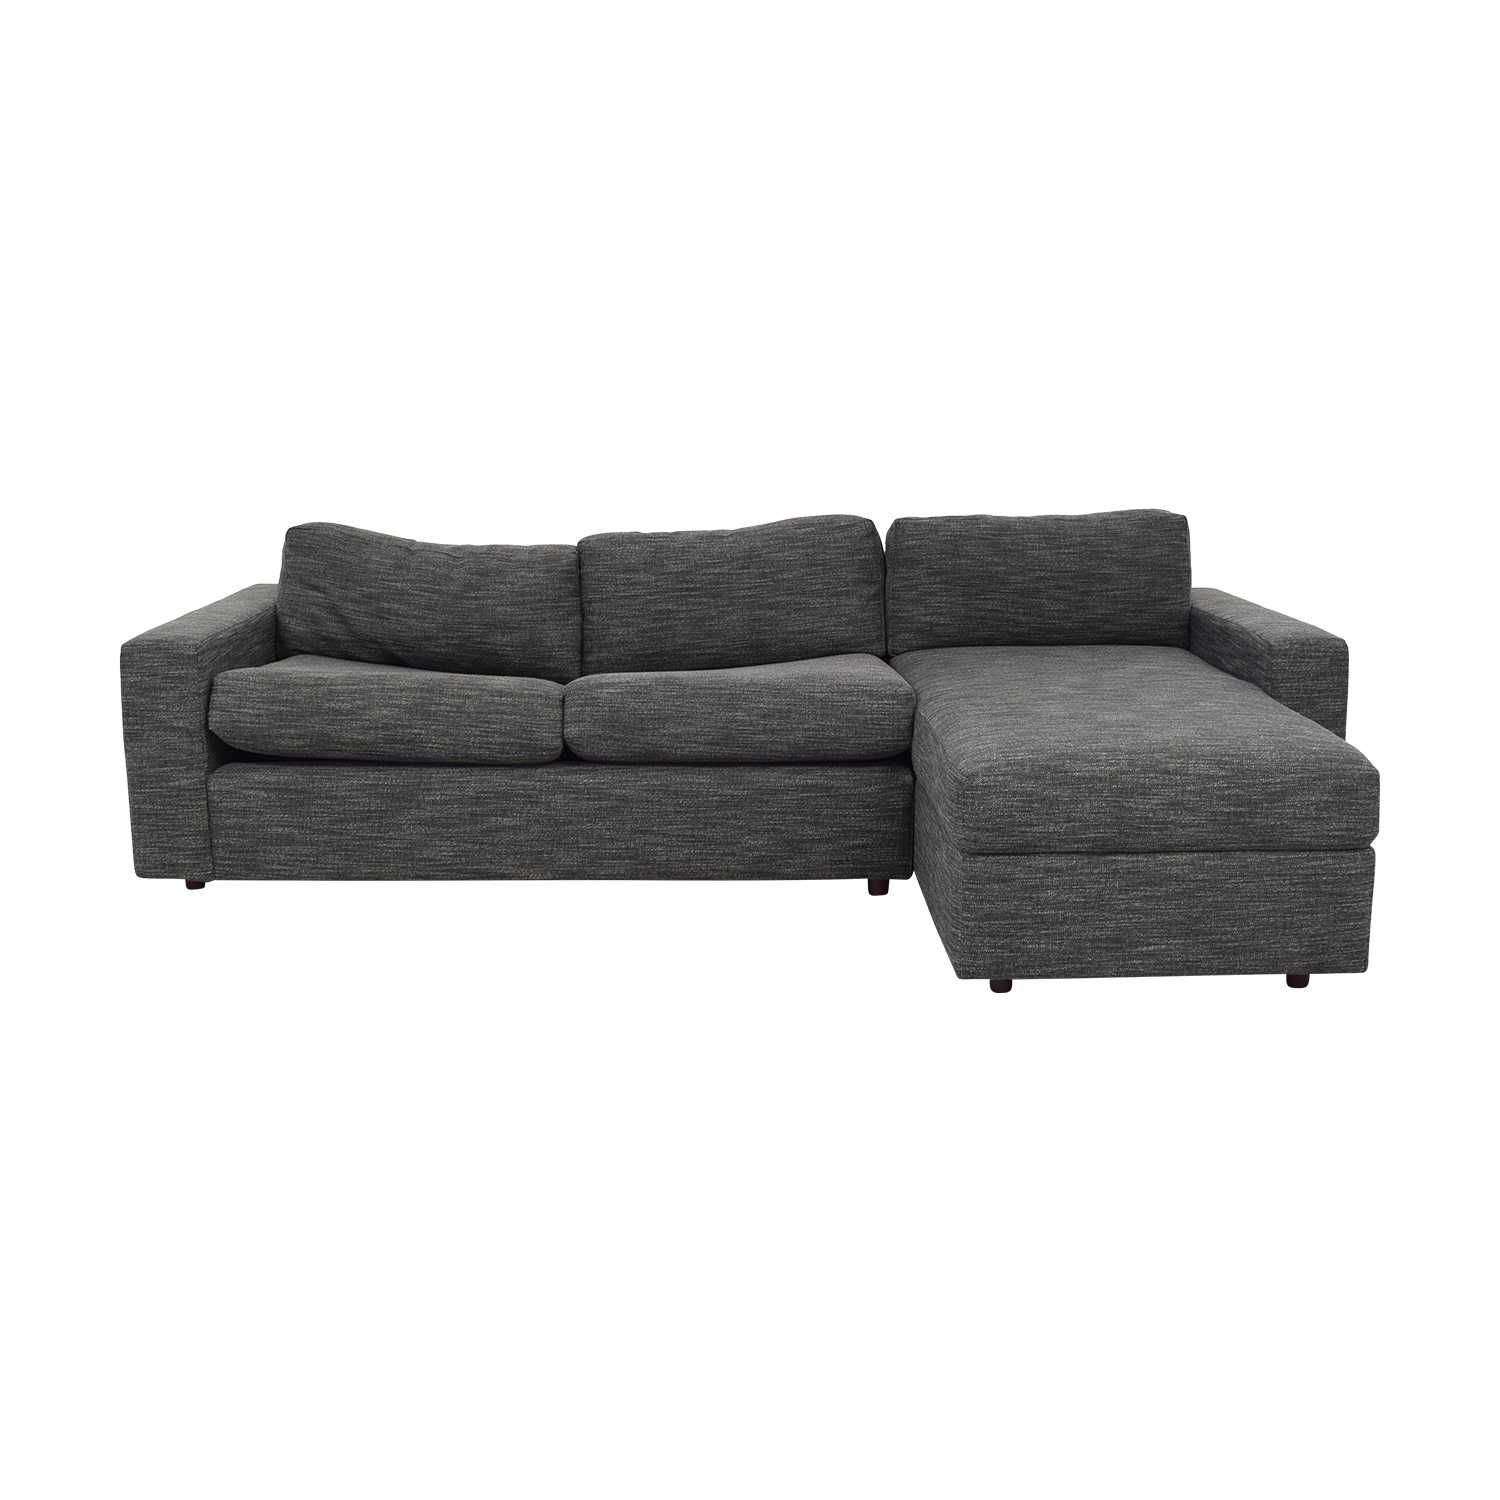 West Elm West Elm Urban Sleeper Sofa with Right Arm Storage Chaise Sectionals